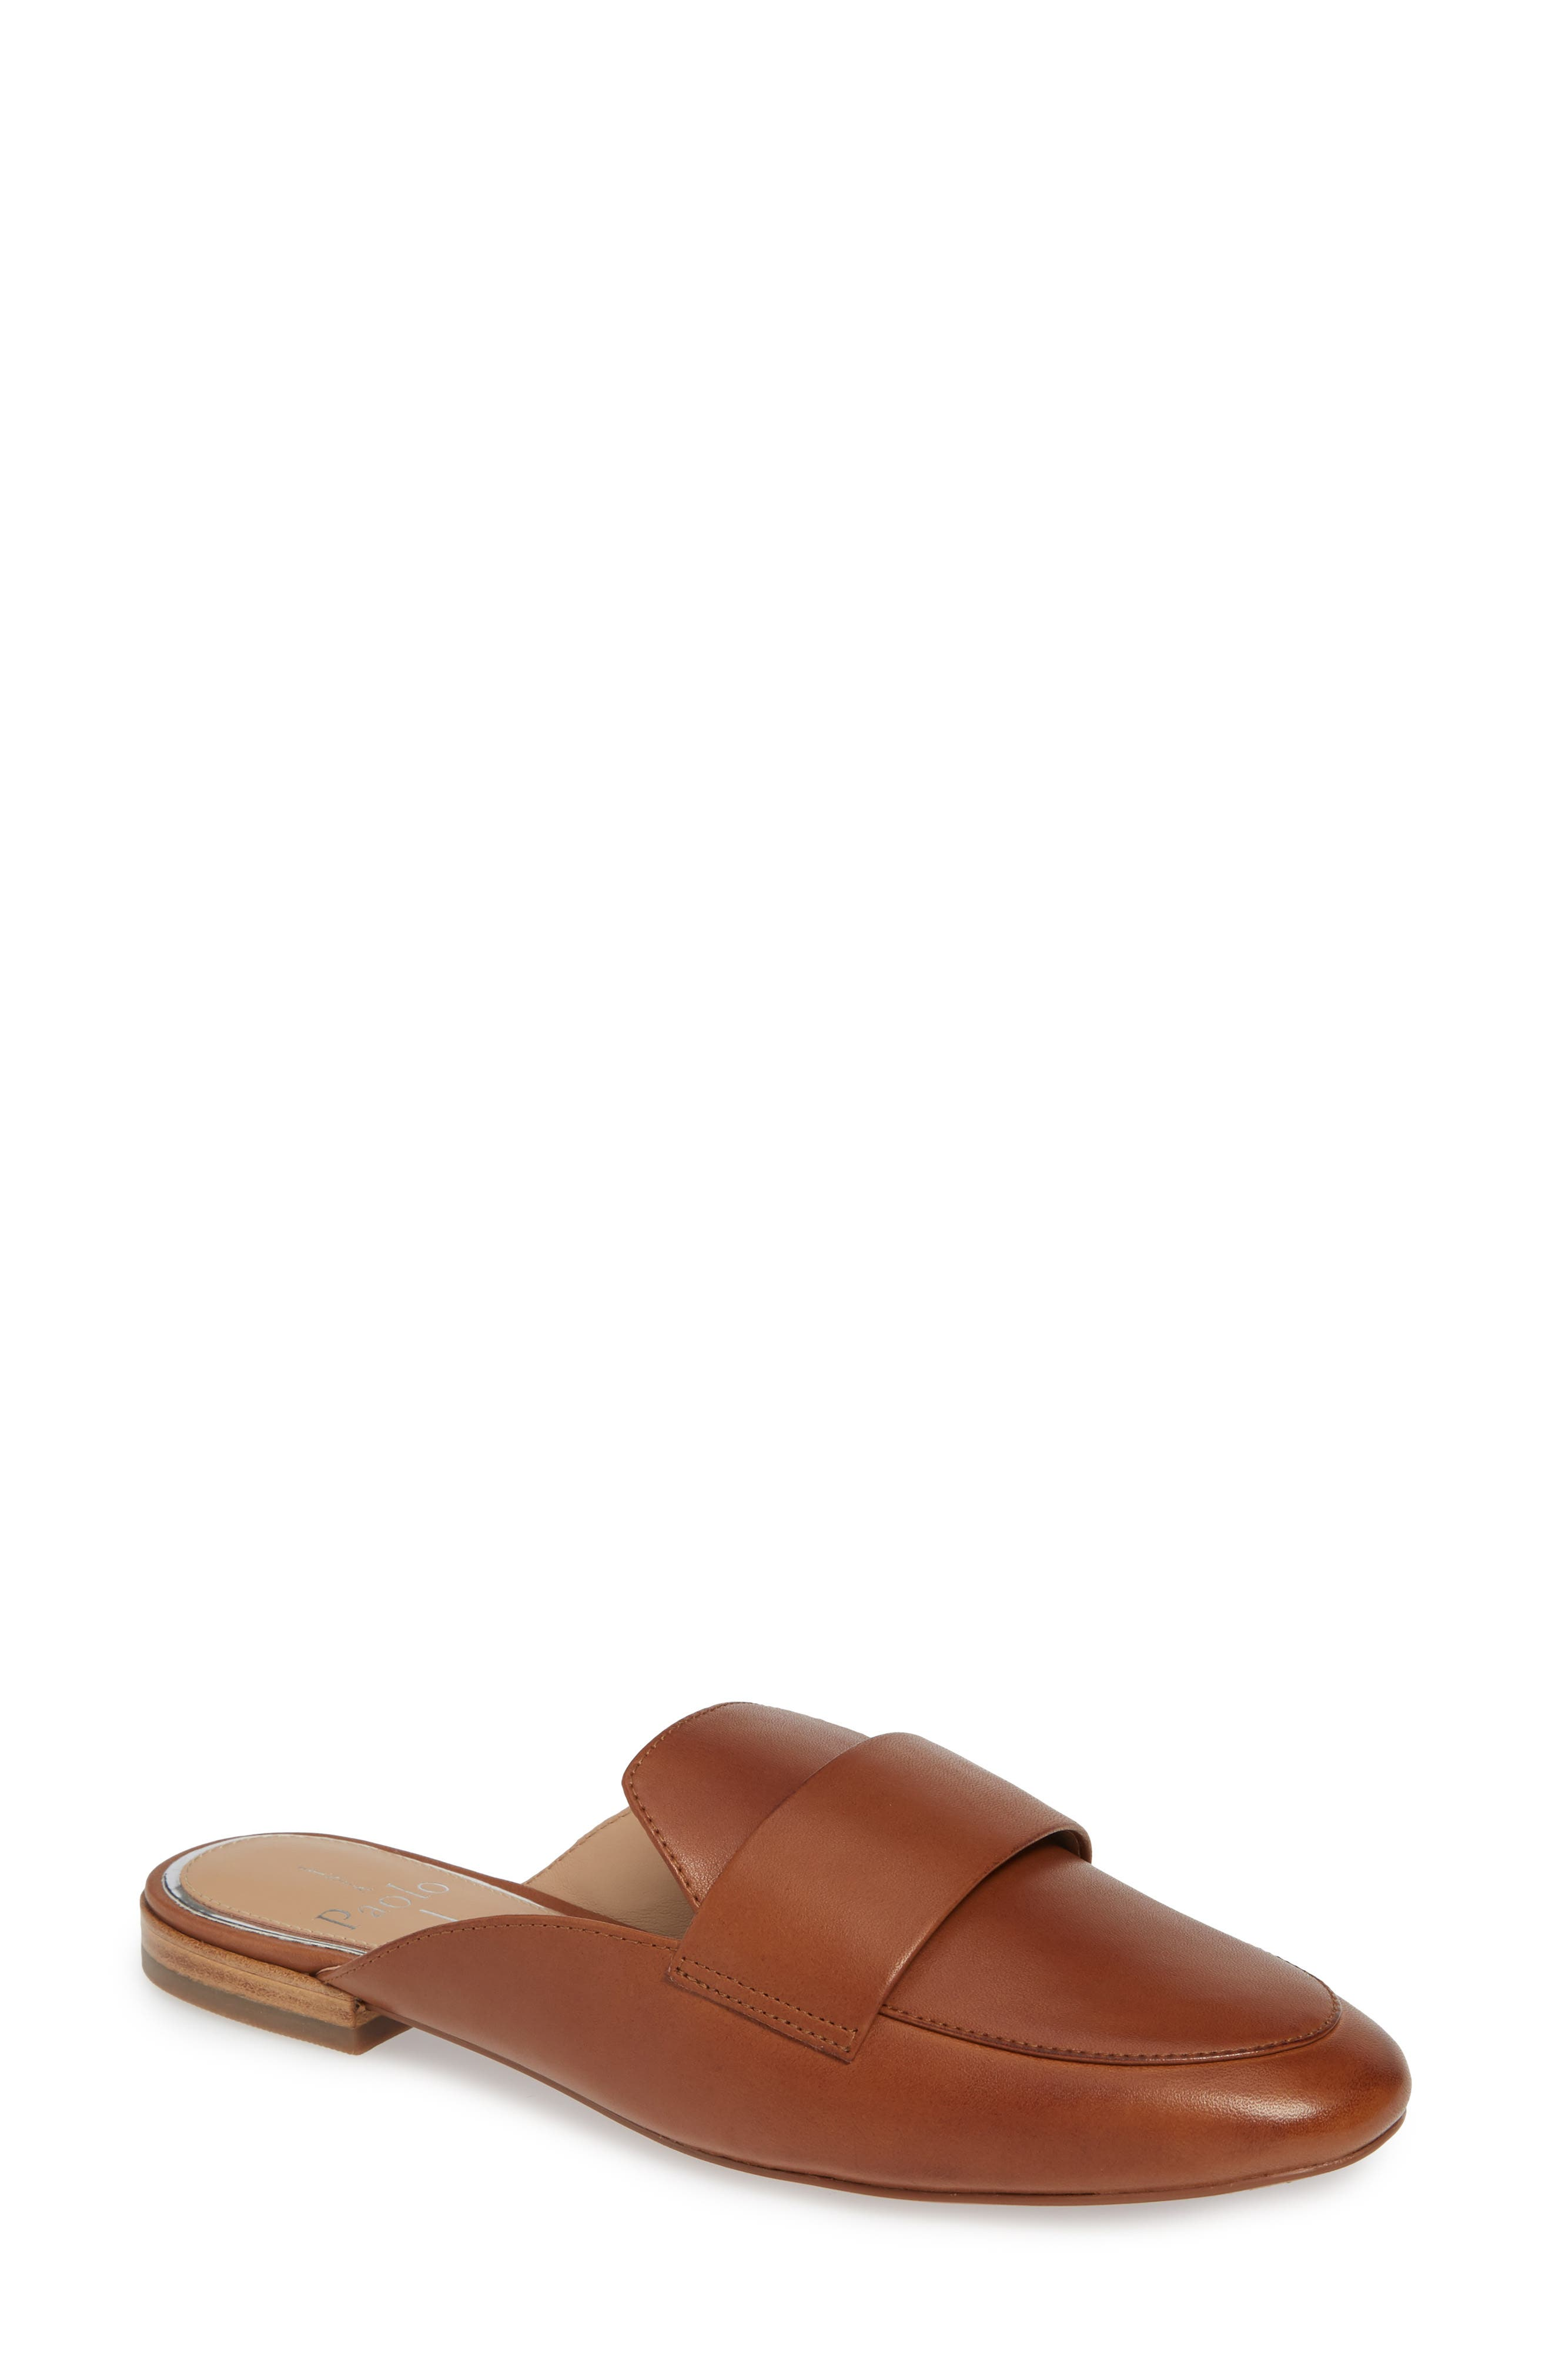 Linea Paolo Annie Loafer Mule, Brown